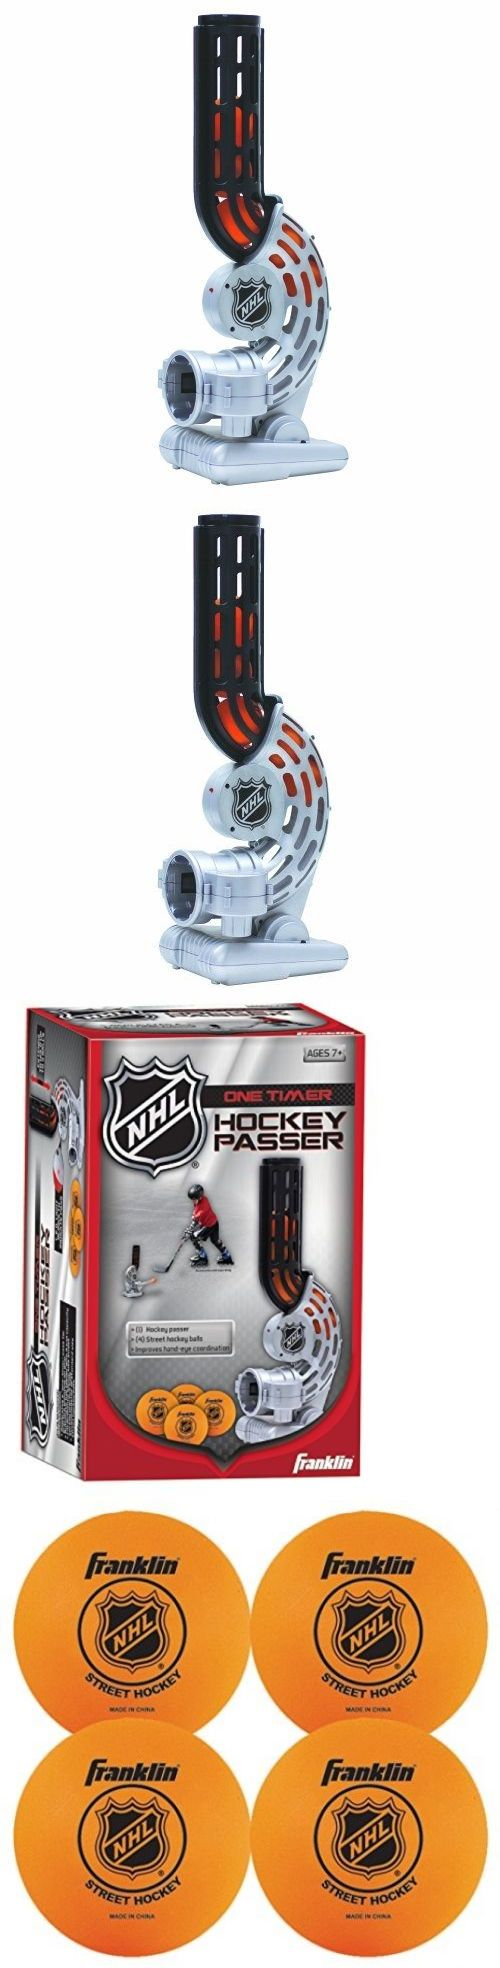 Other Ice and Roller Hockey 2911: Franklin Sports Nhl One Timer Hockey Passer, Hokey Training Practice New -> BUY IT NOW ONLY: $72.95 on eBay!